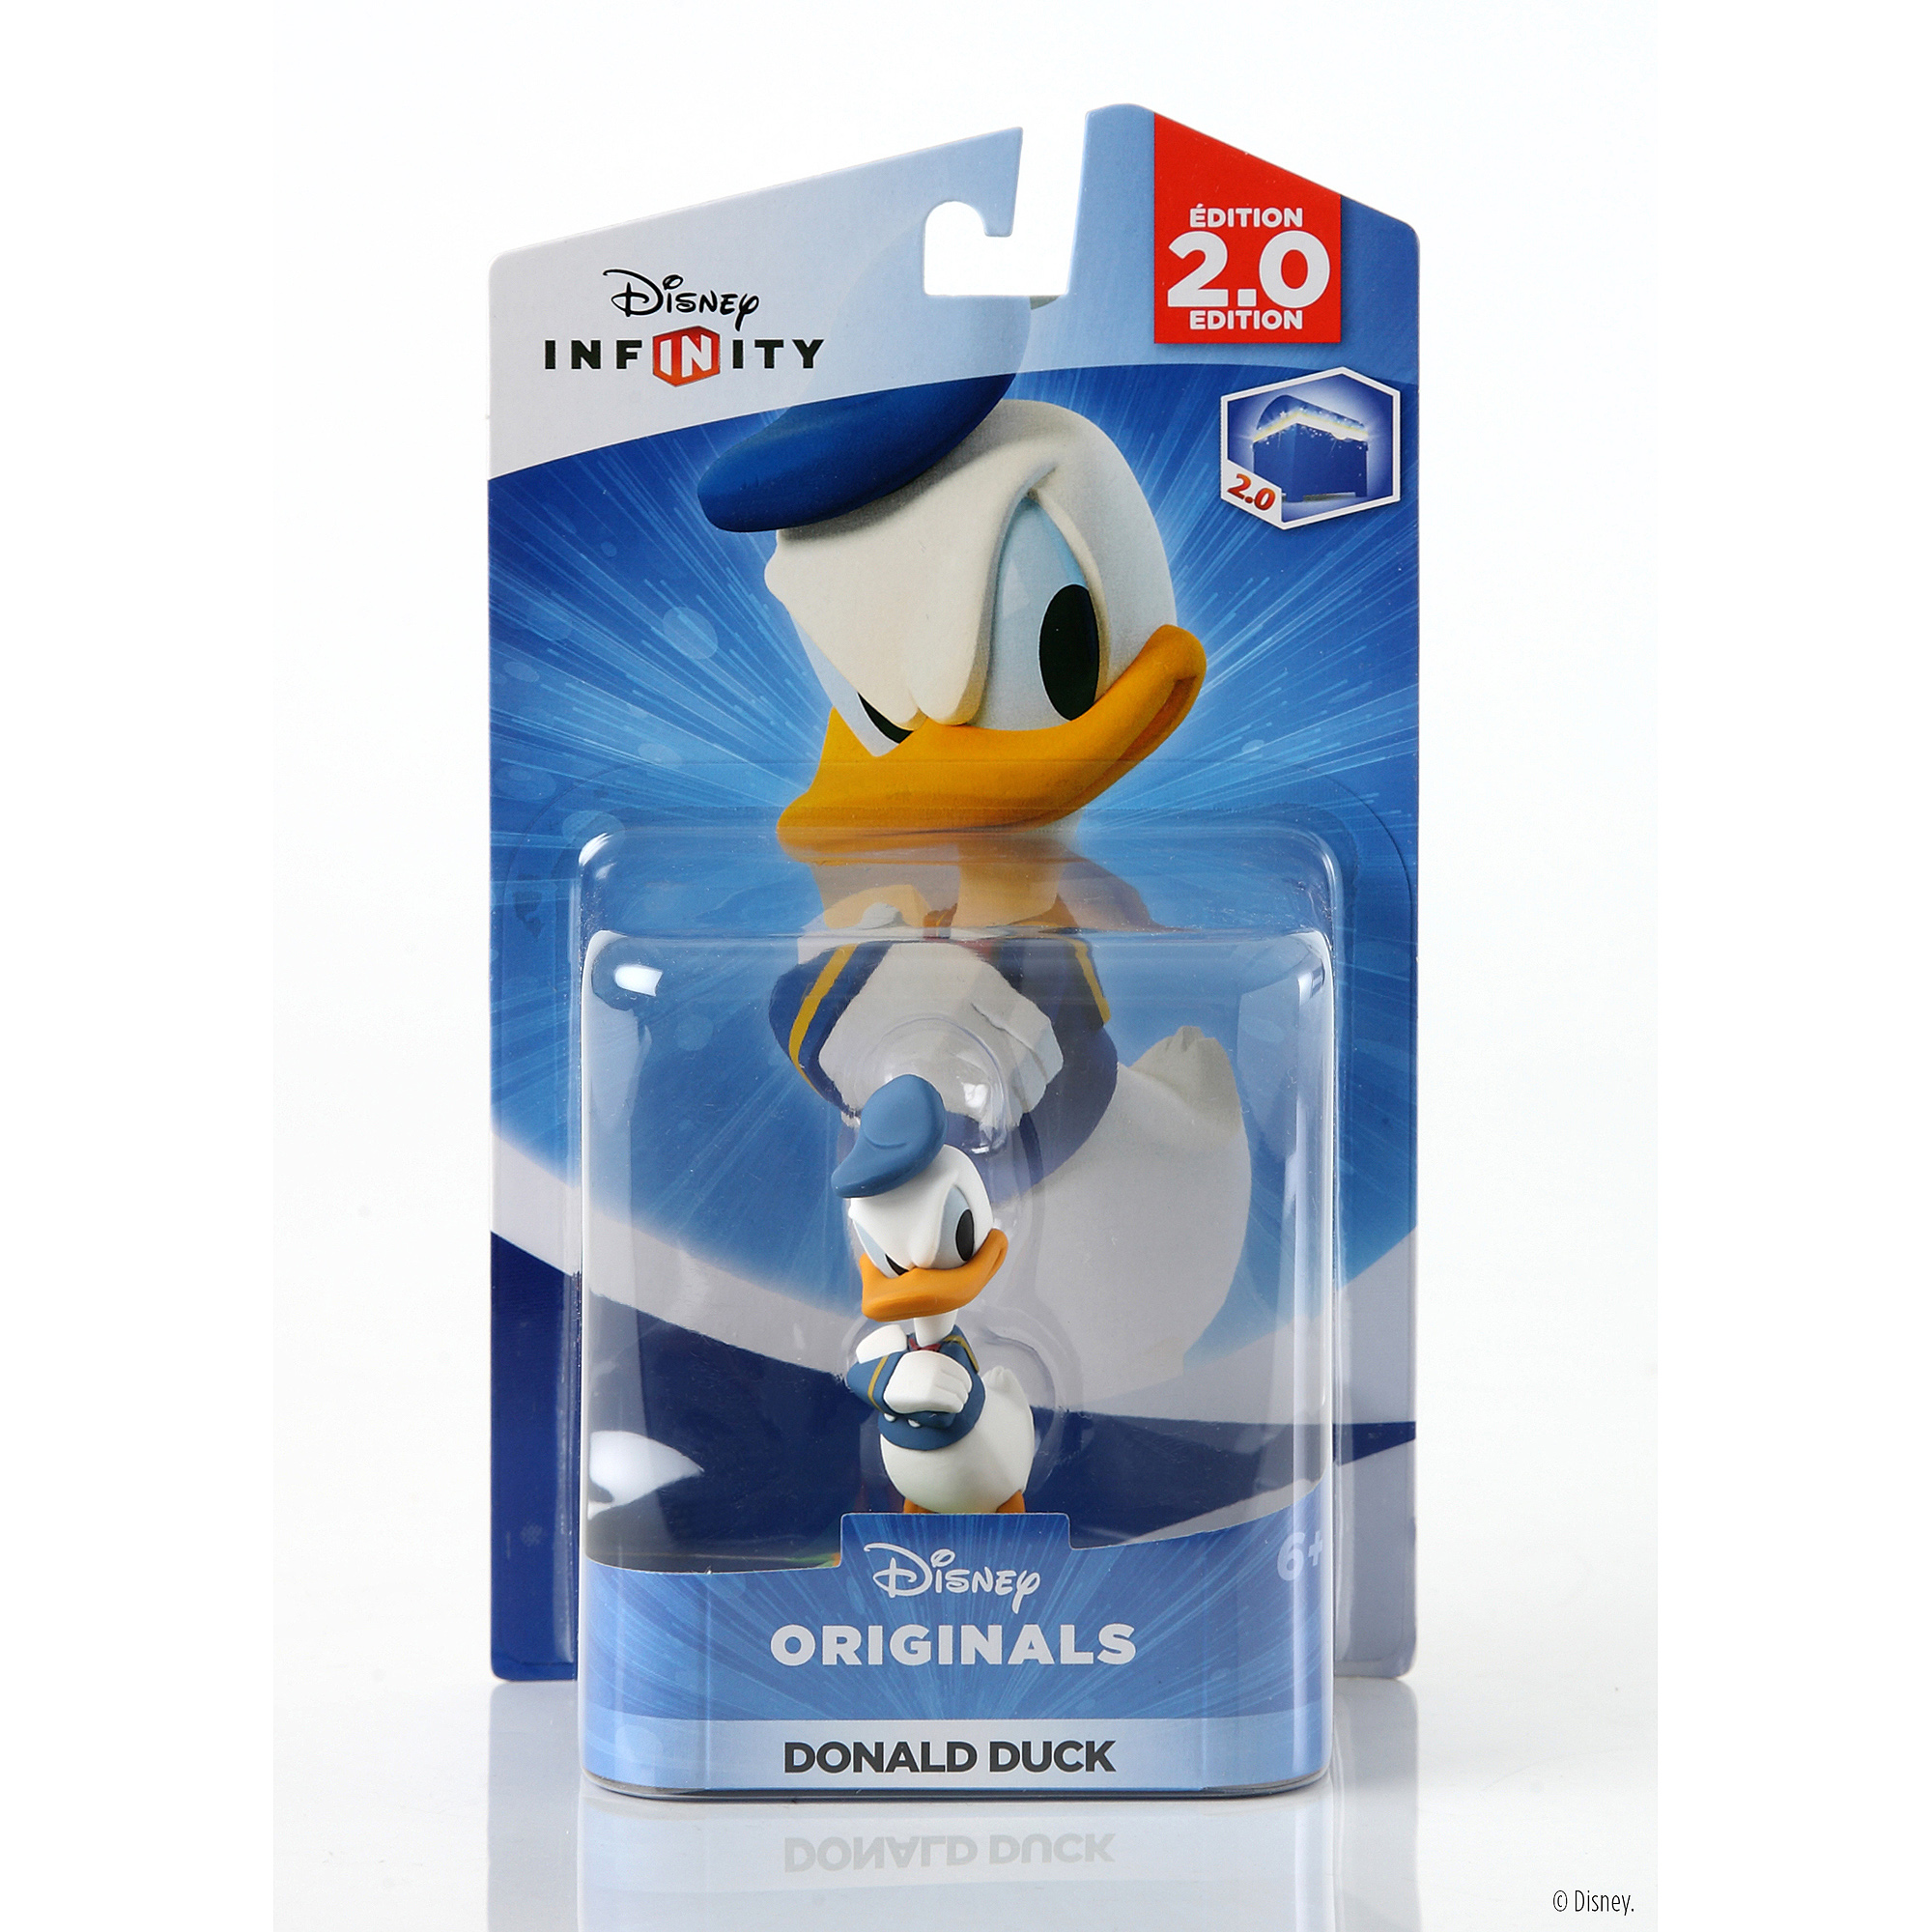 Disney Infinity: Disney Originals (2.0 Edition) Donald Duck Figure (Universal)